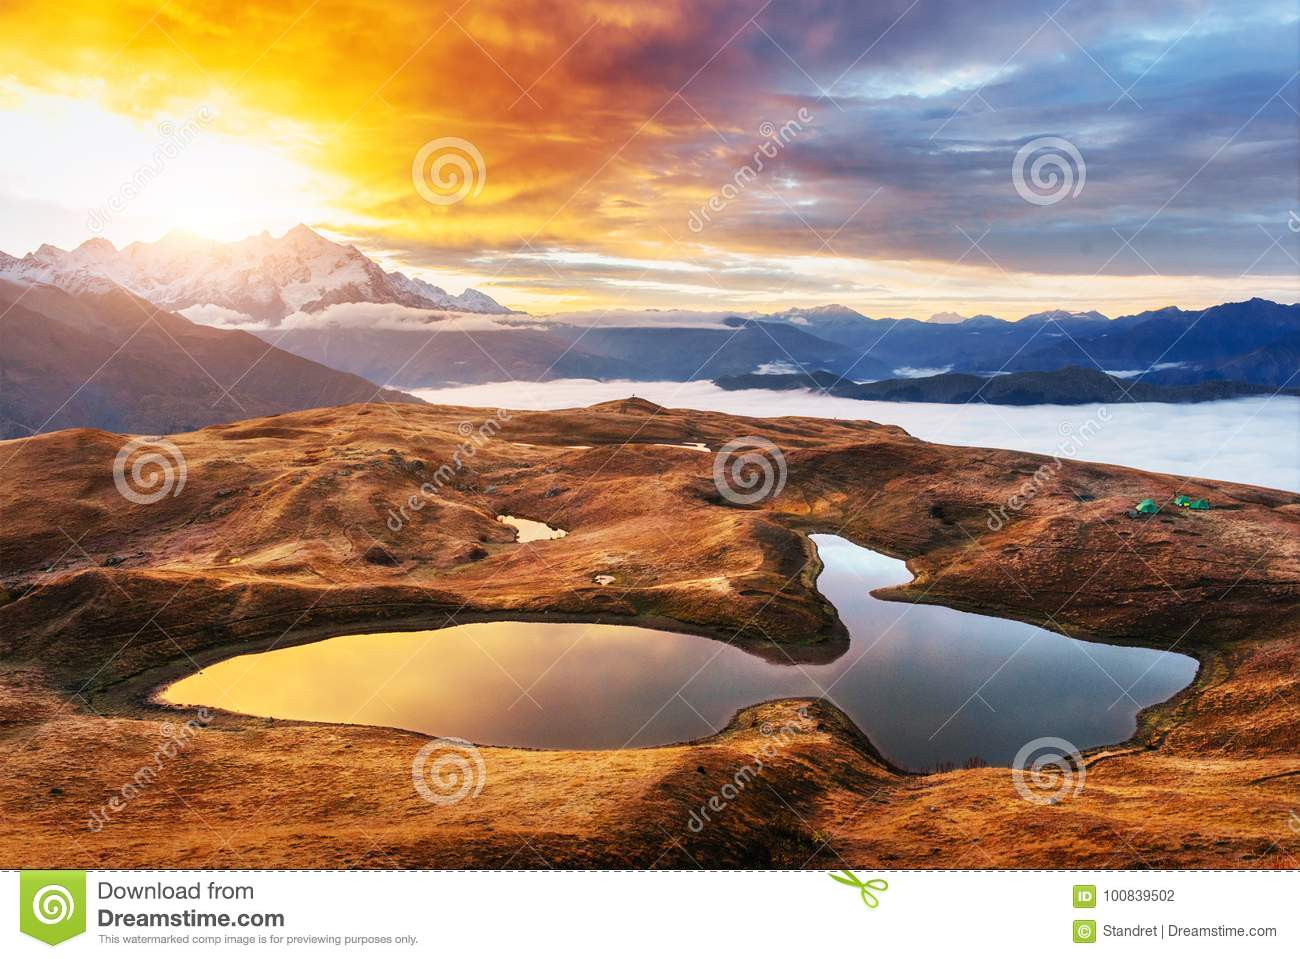 We are looking for photos of life here at pine mountain lake. 154 860 Sunset Mountain Lake Photos Free Royalty Free Stock Photos From Dreamstime